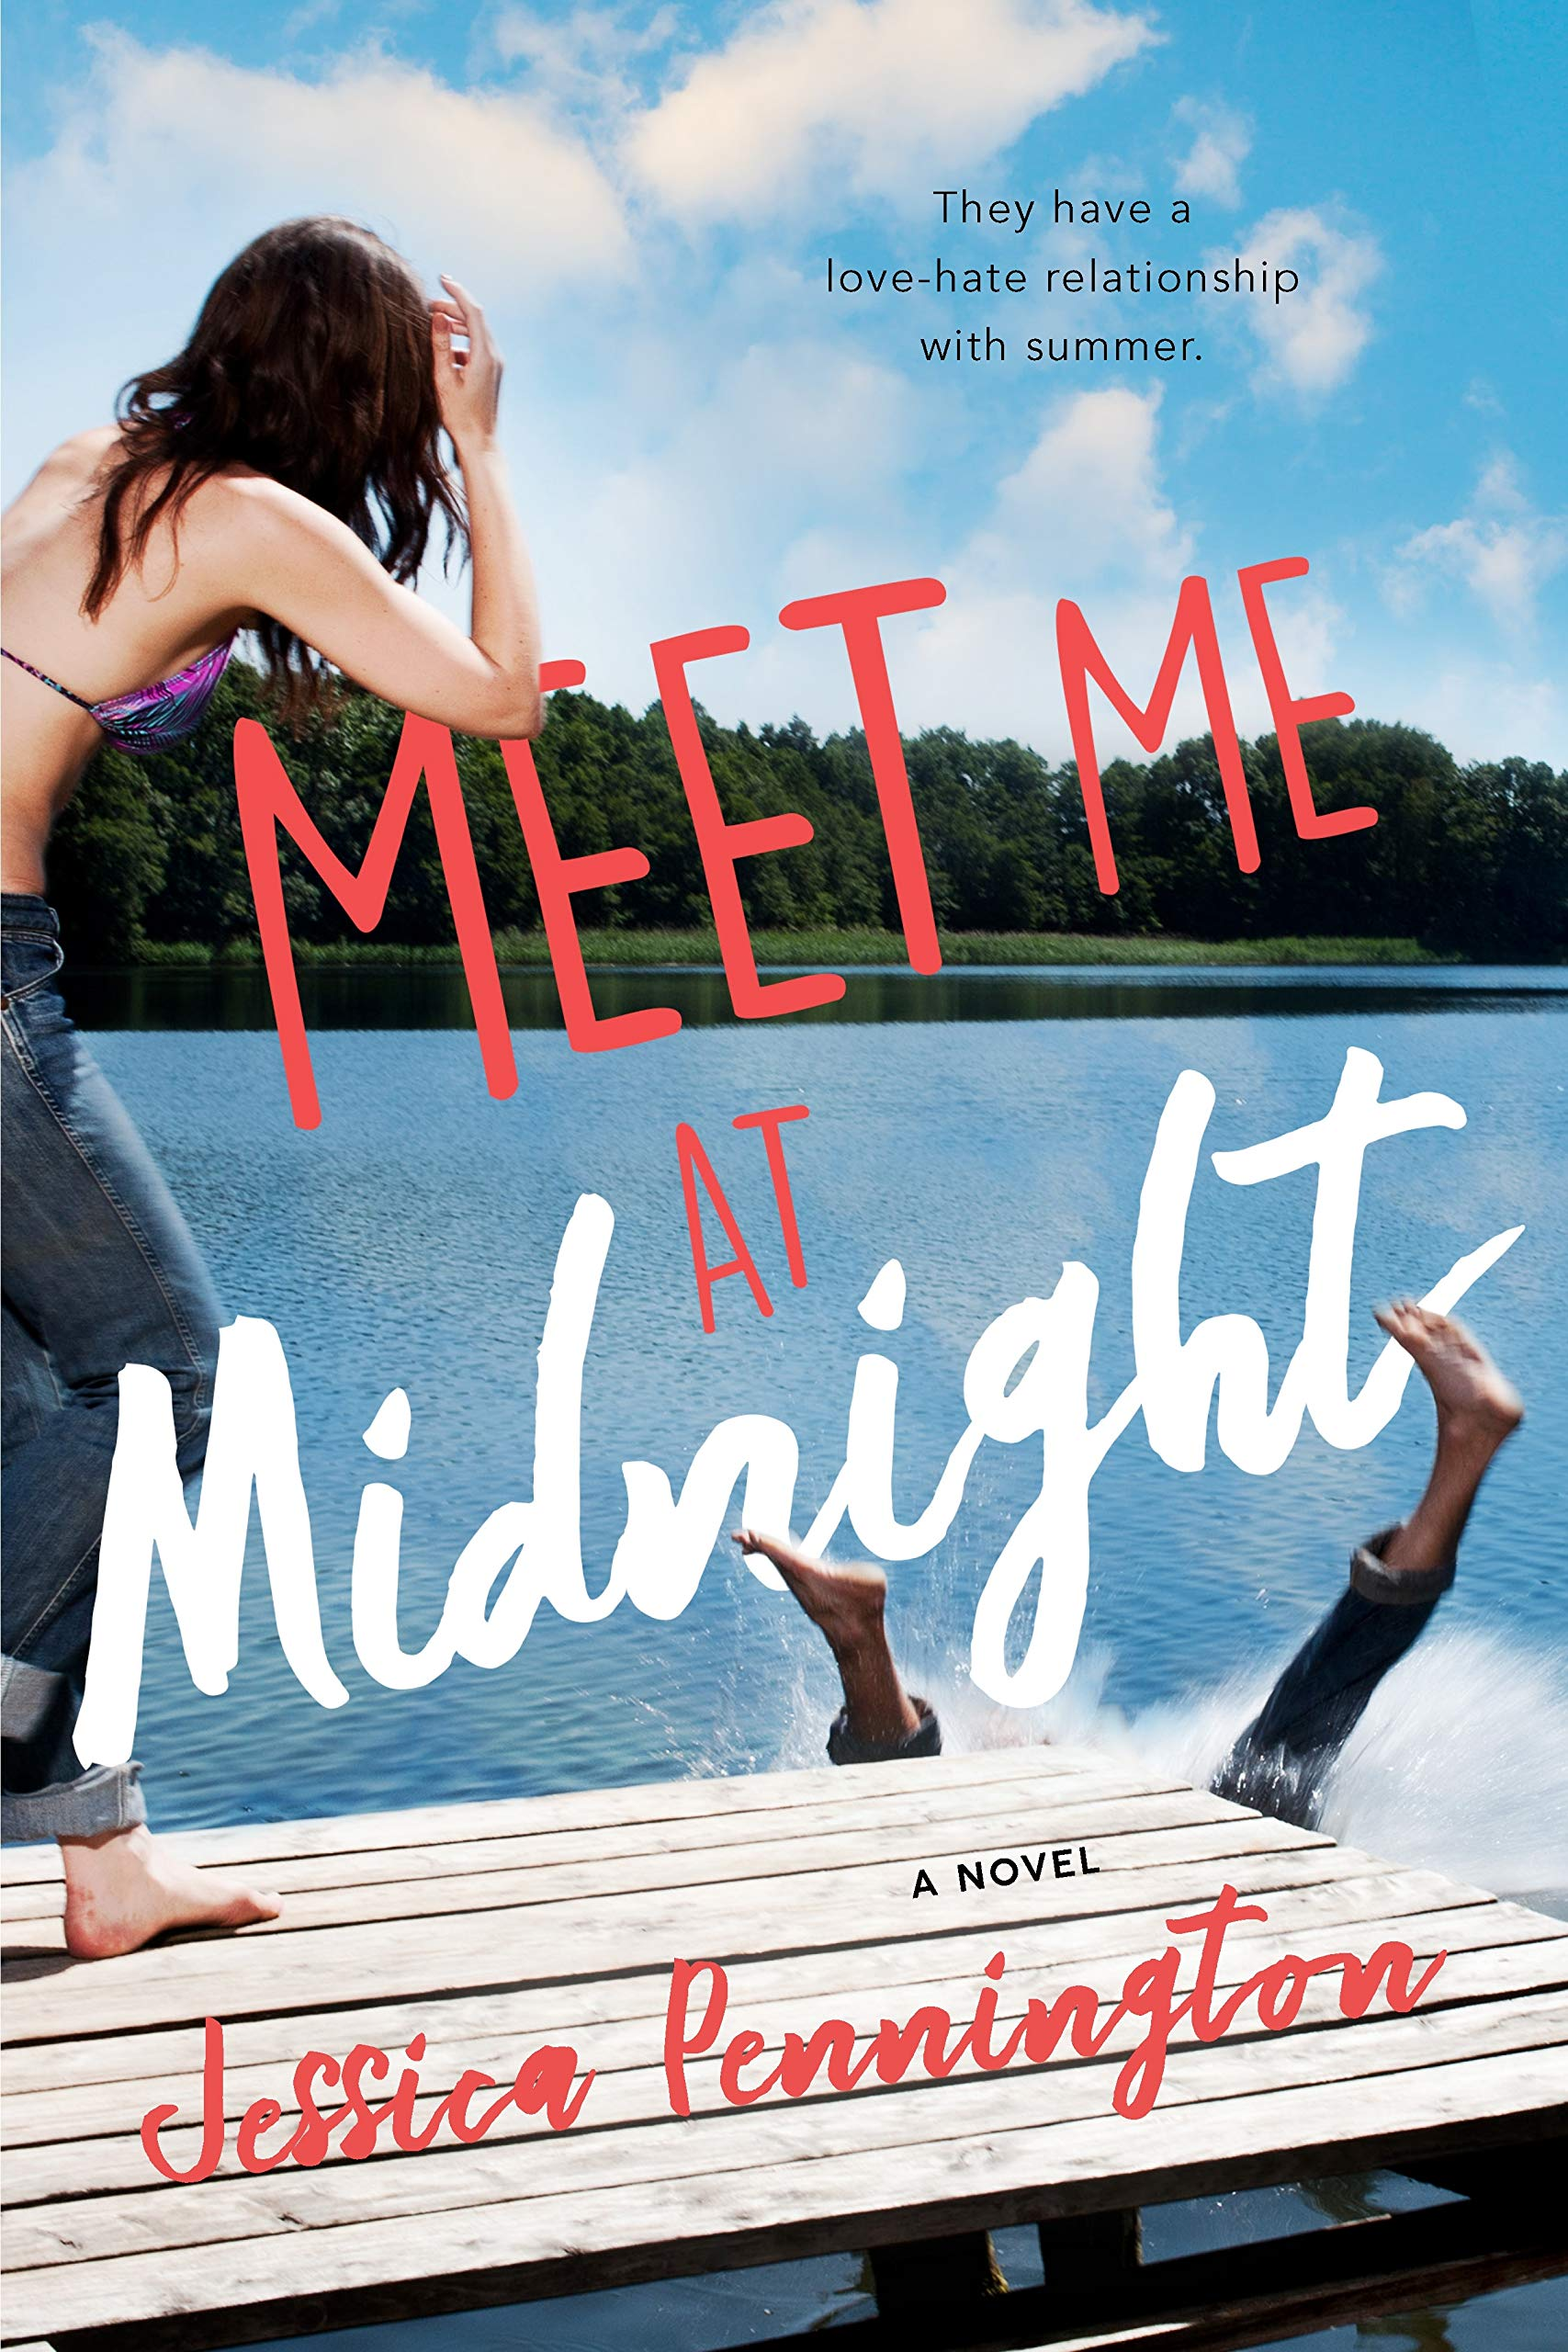 Amazon.com: Meet Me at Midnight (9781250187666): Pennington, Jessica: Books